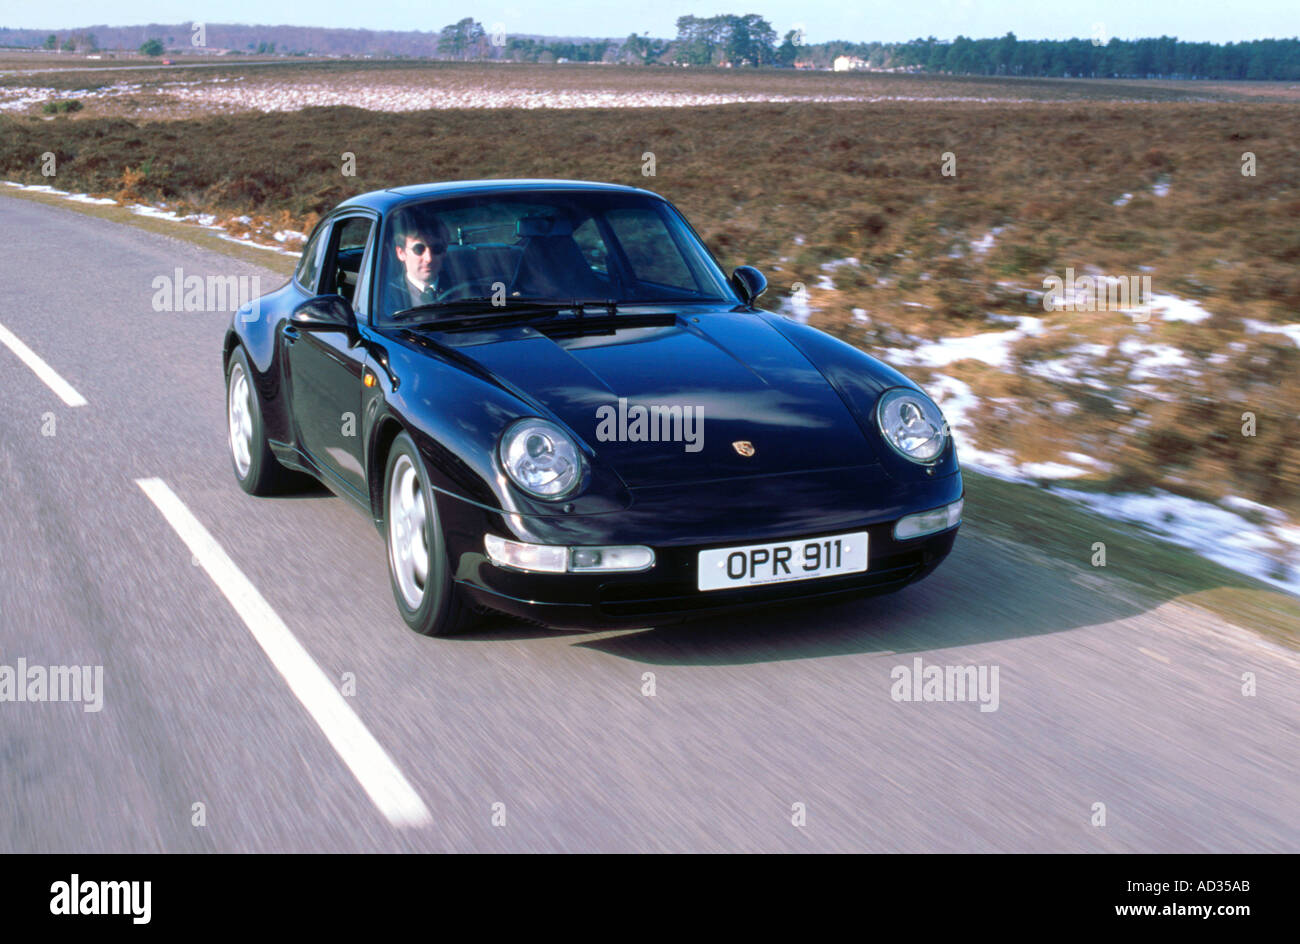 Porsche Car Road Stock Photos Porsche Car Road Stock Images Alamy